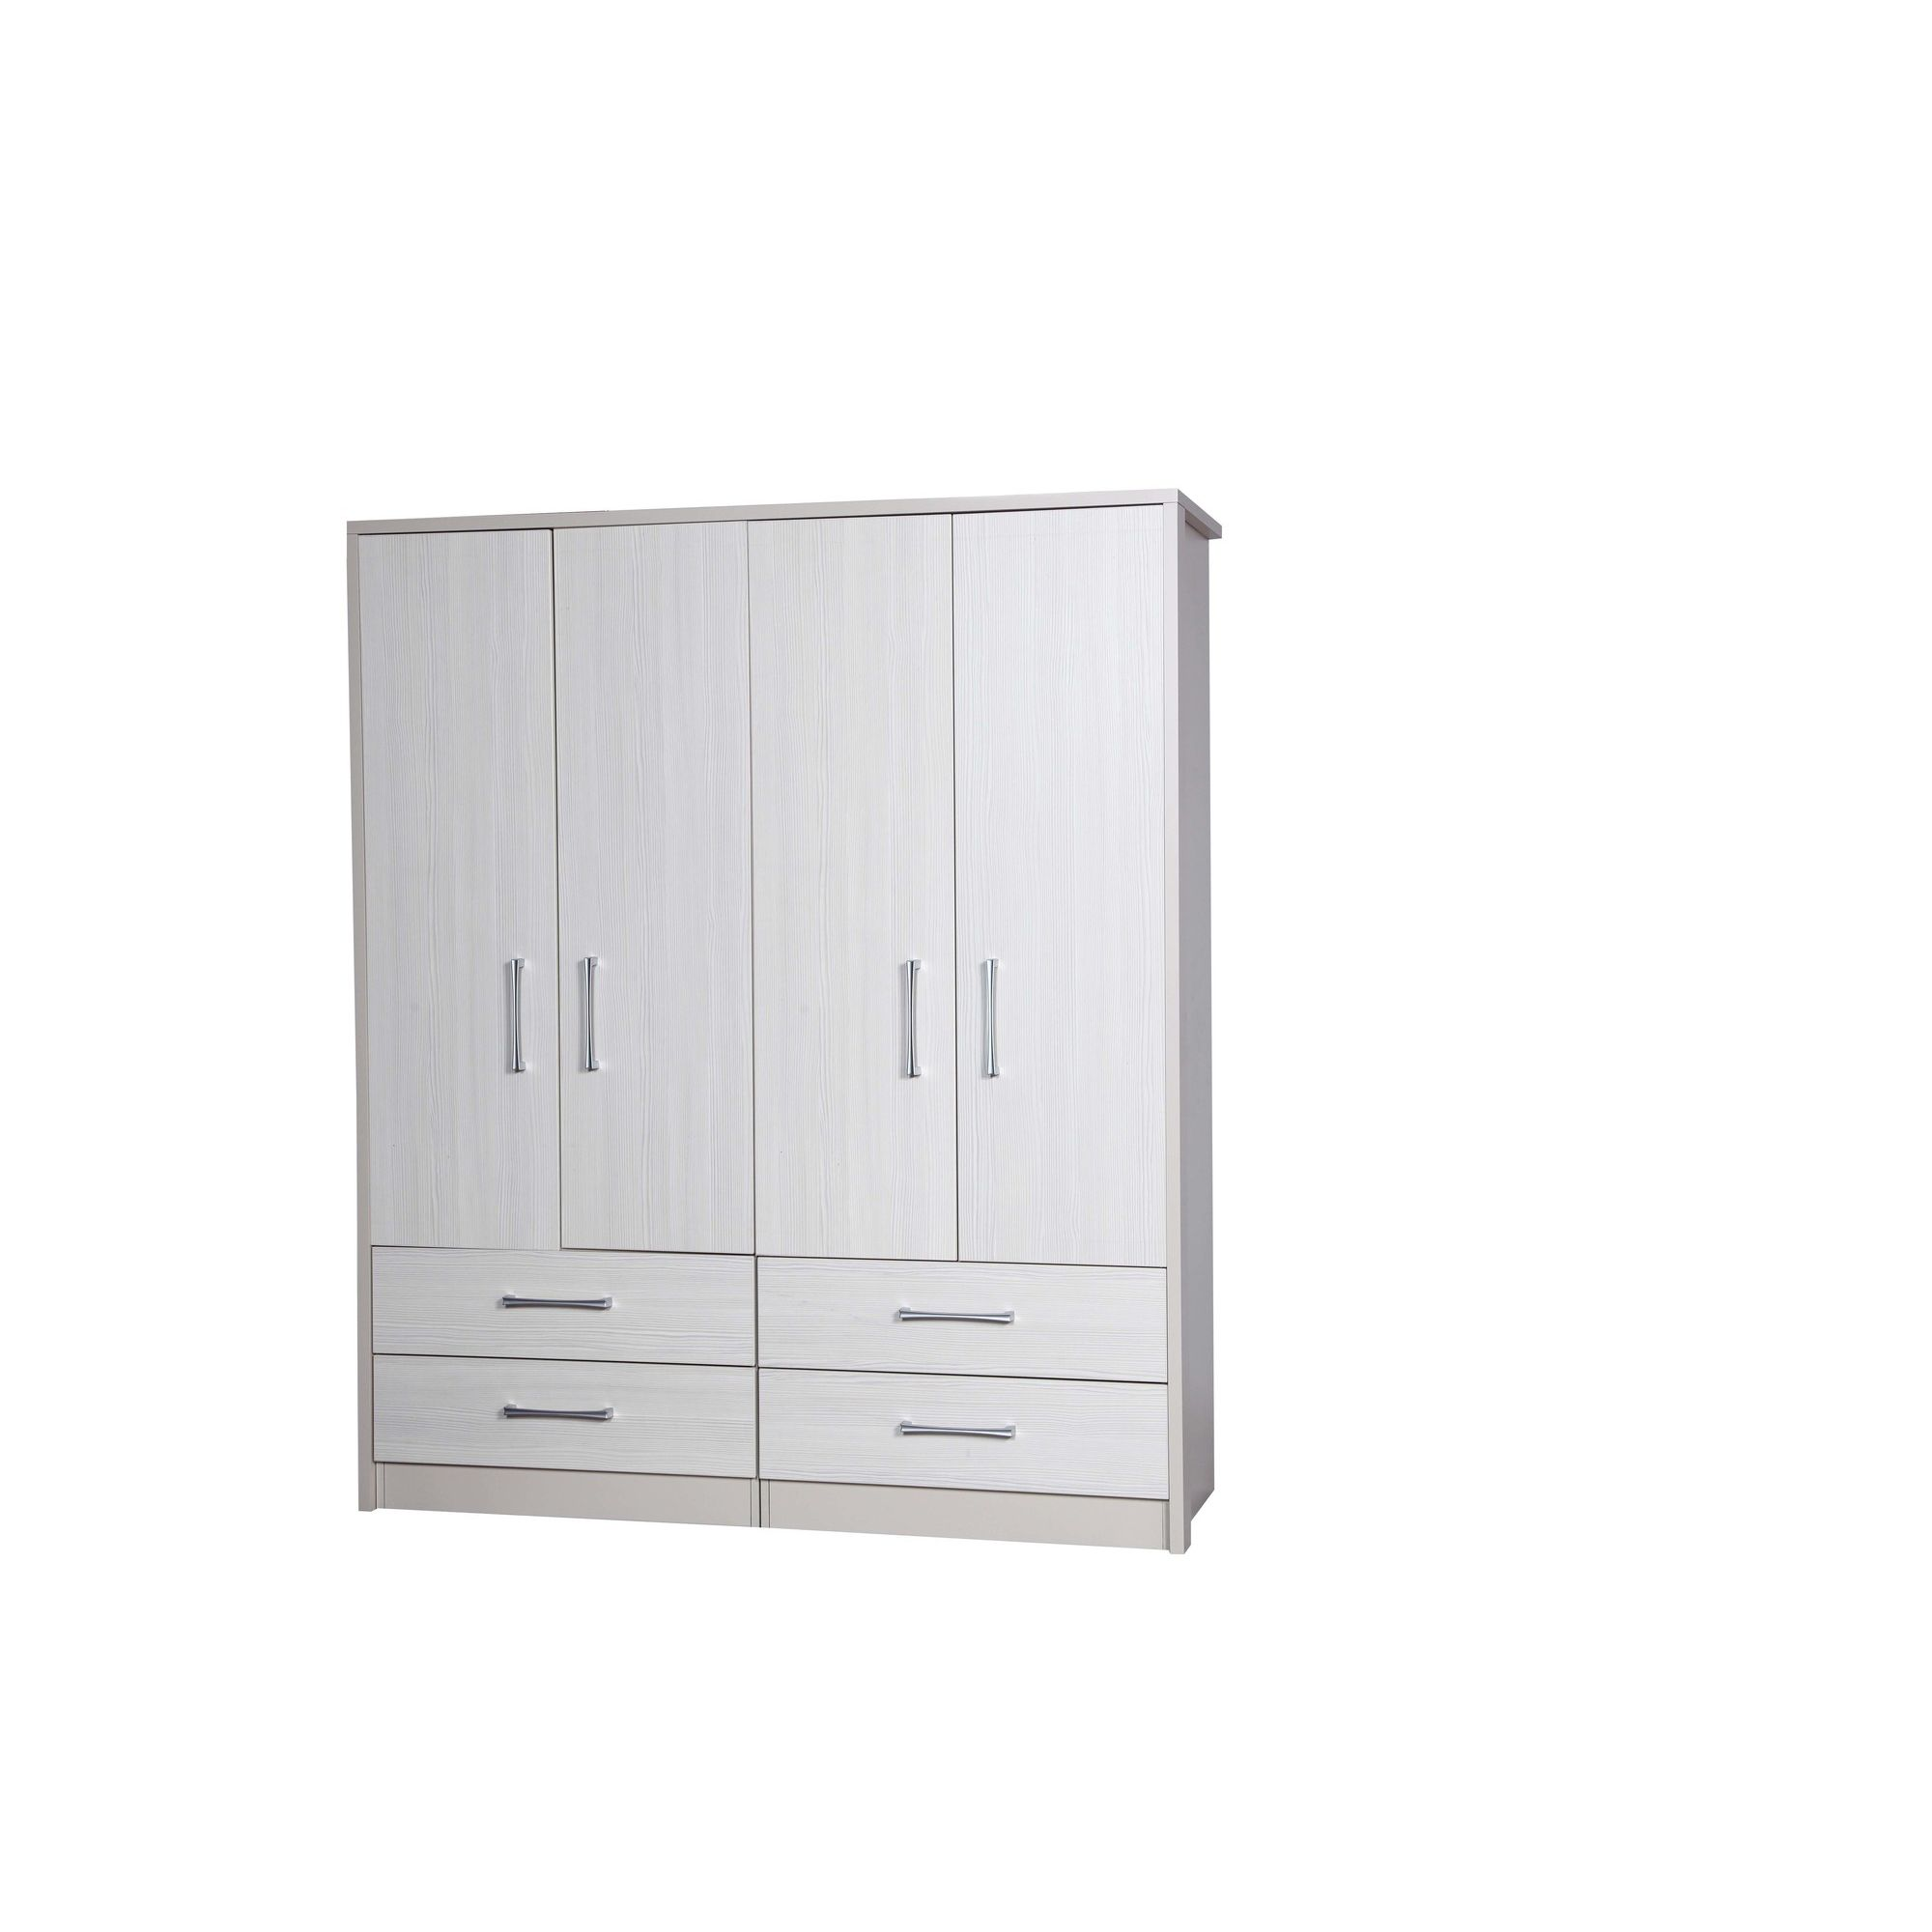 Alto Furniture Avola 4 Door Combi Wardrobe - Cream Carcass With White Avola at Tesco Direct